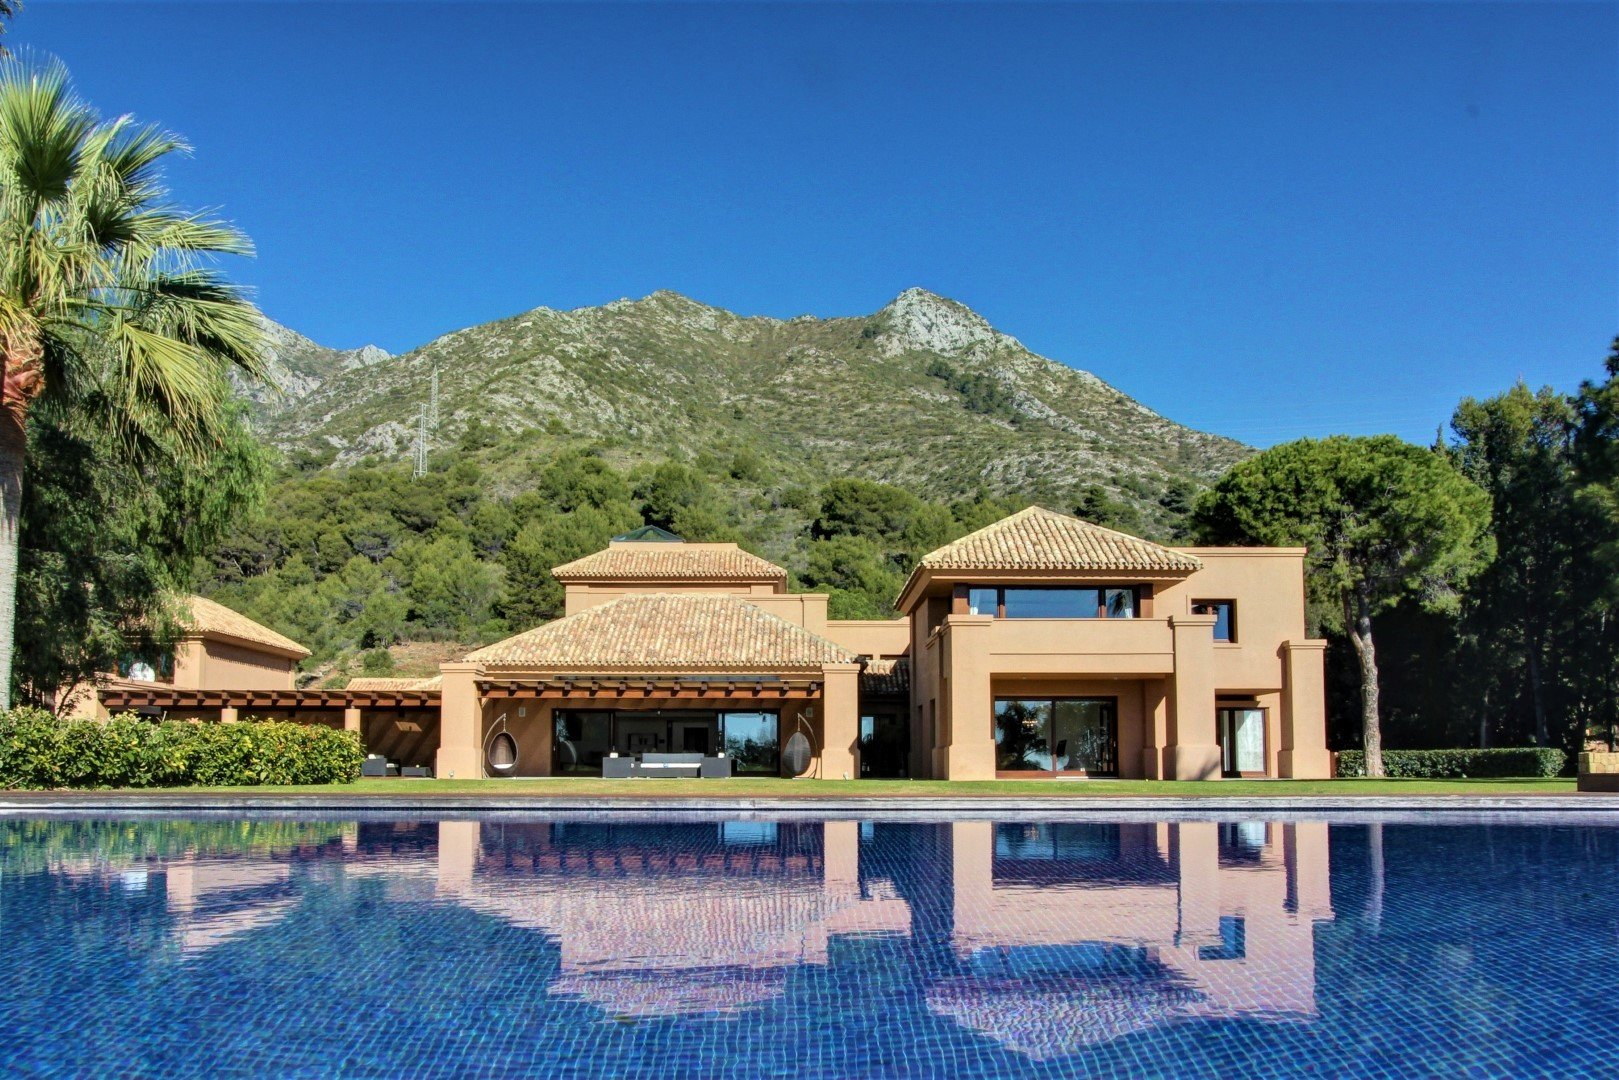 Villa for rent in Marbella, Cascada de Camojan